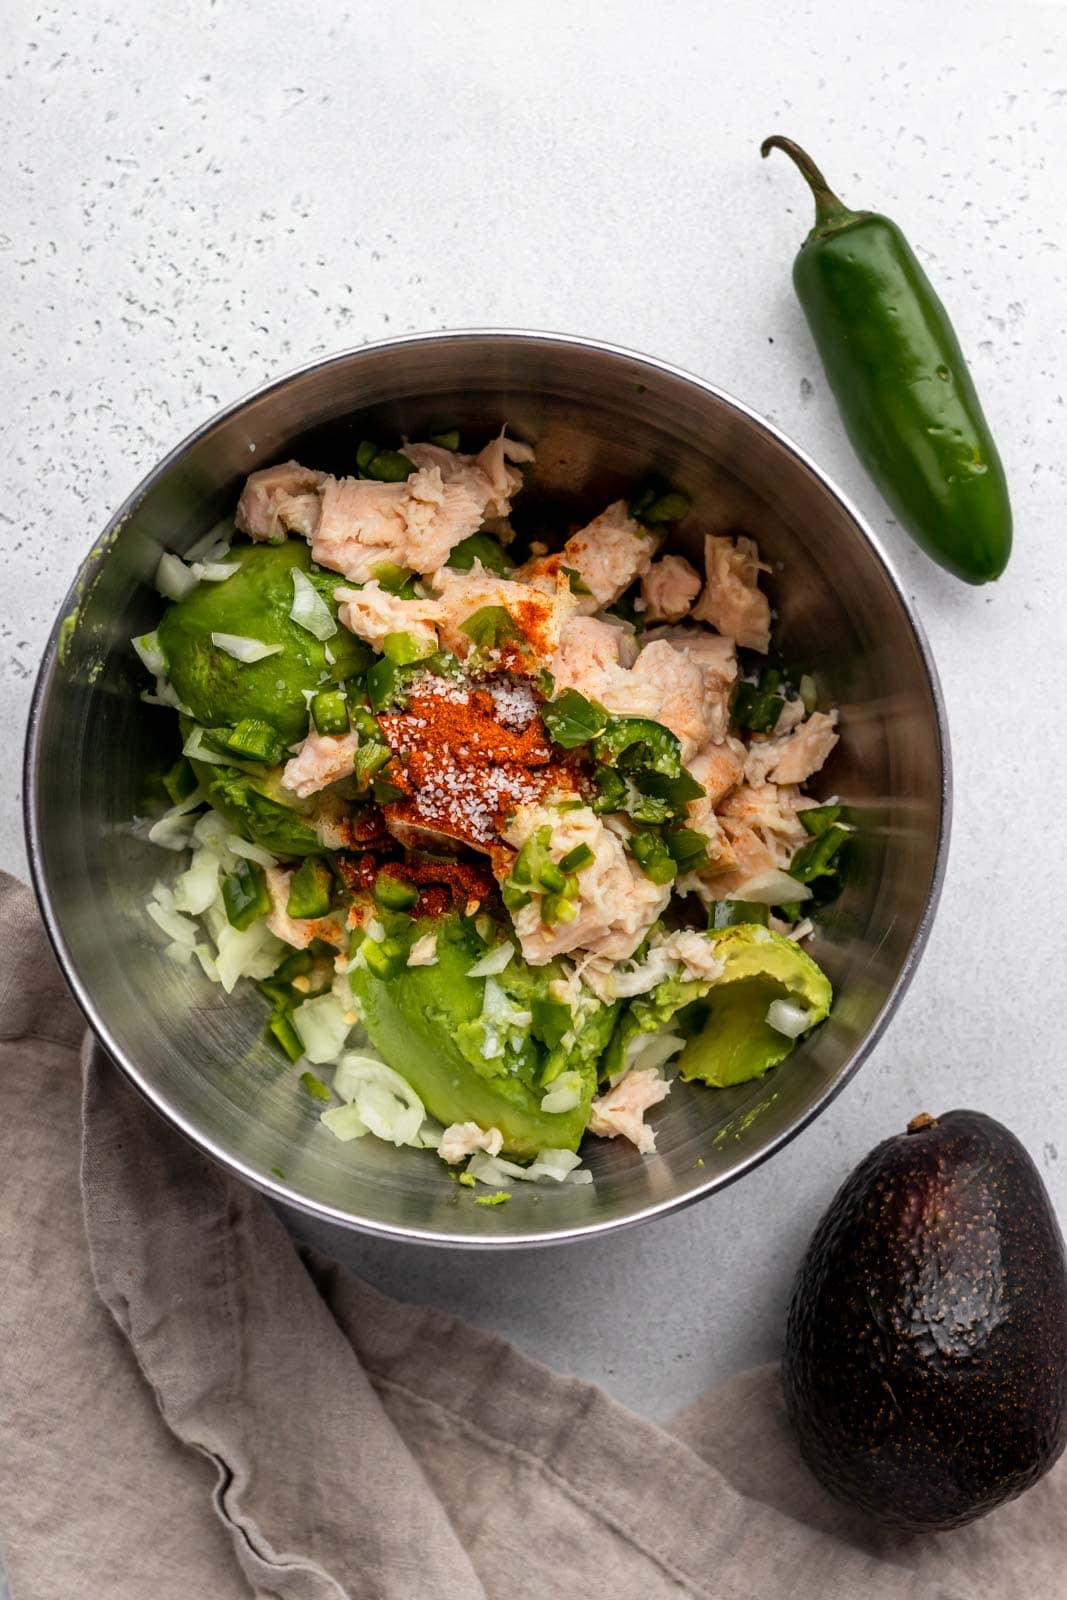 mixing bowl of canned chicken, avocado, jalapeno and spices